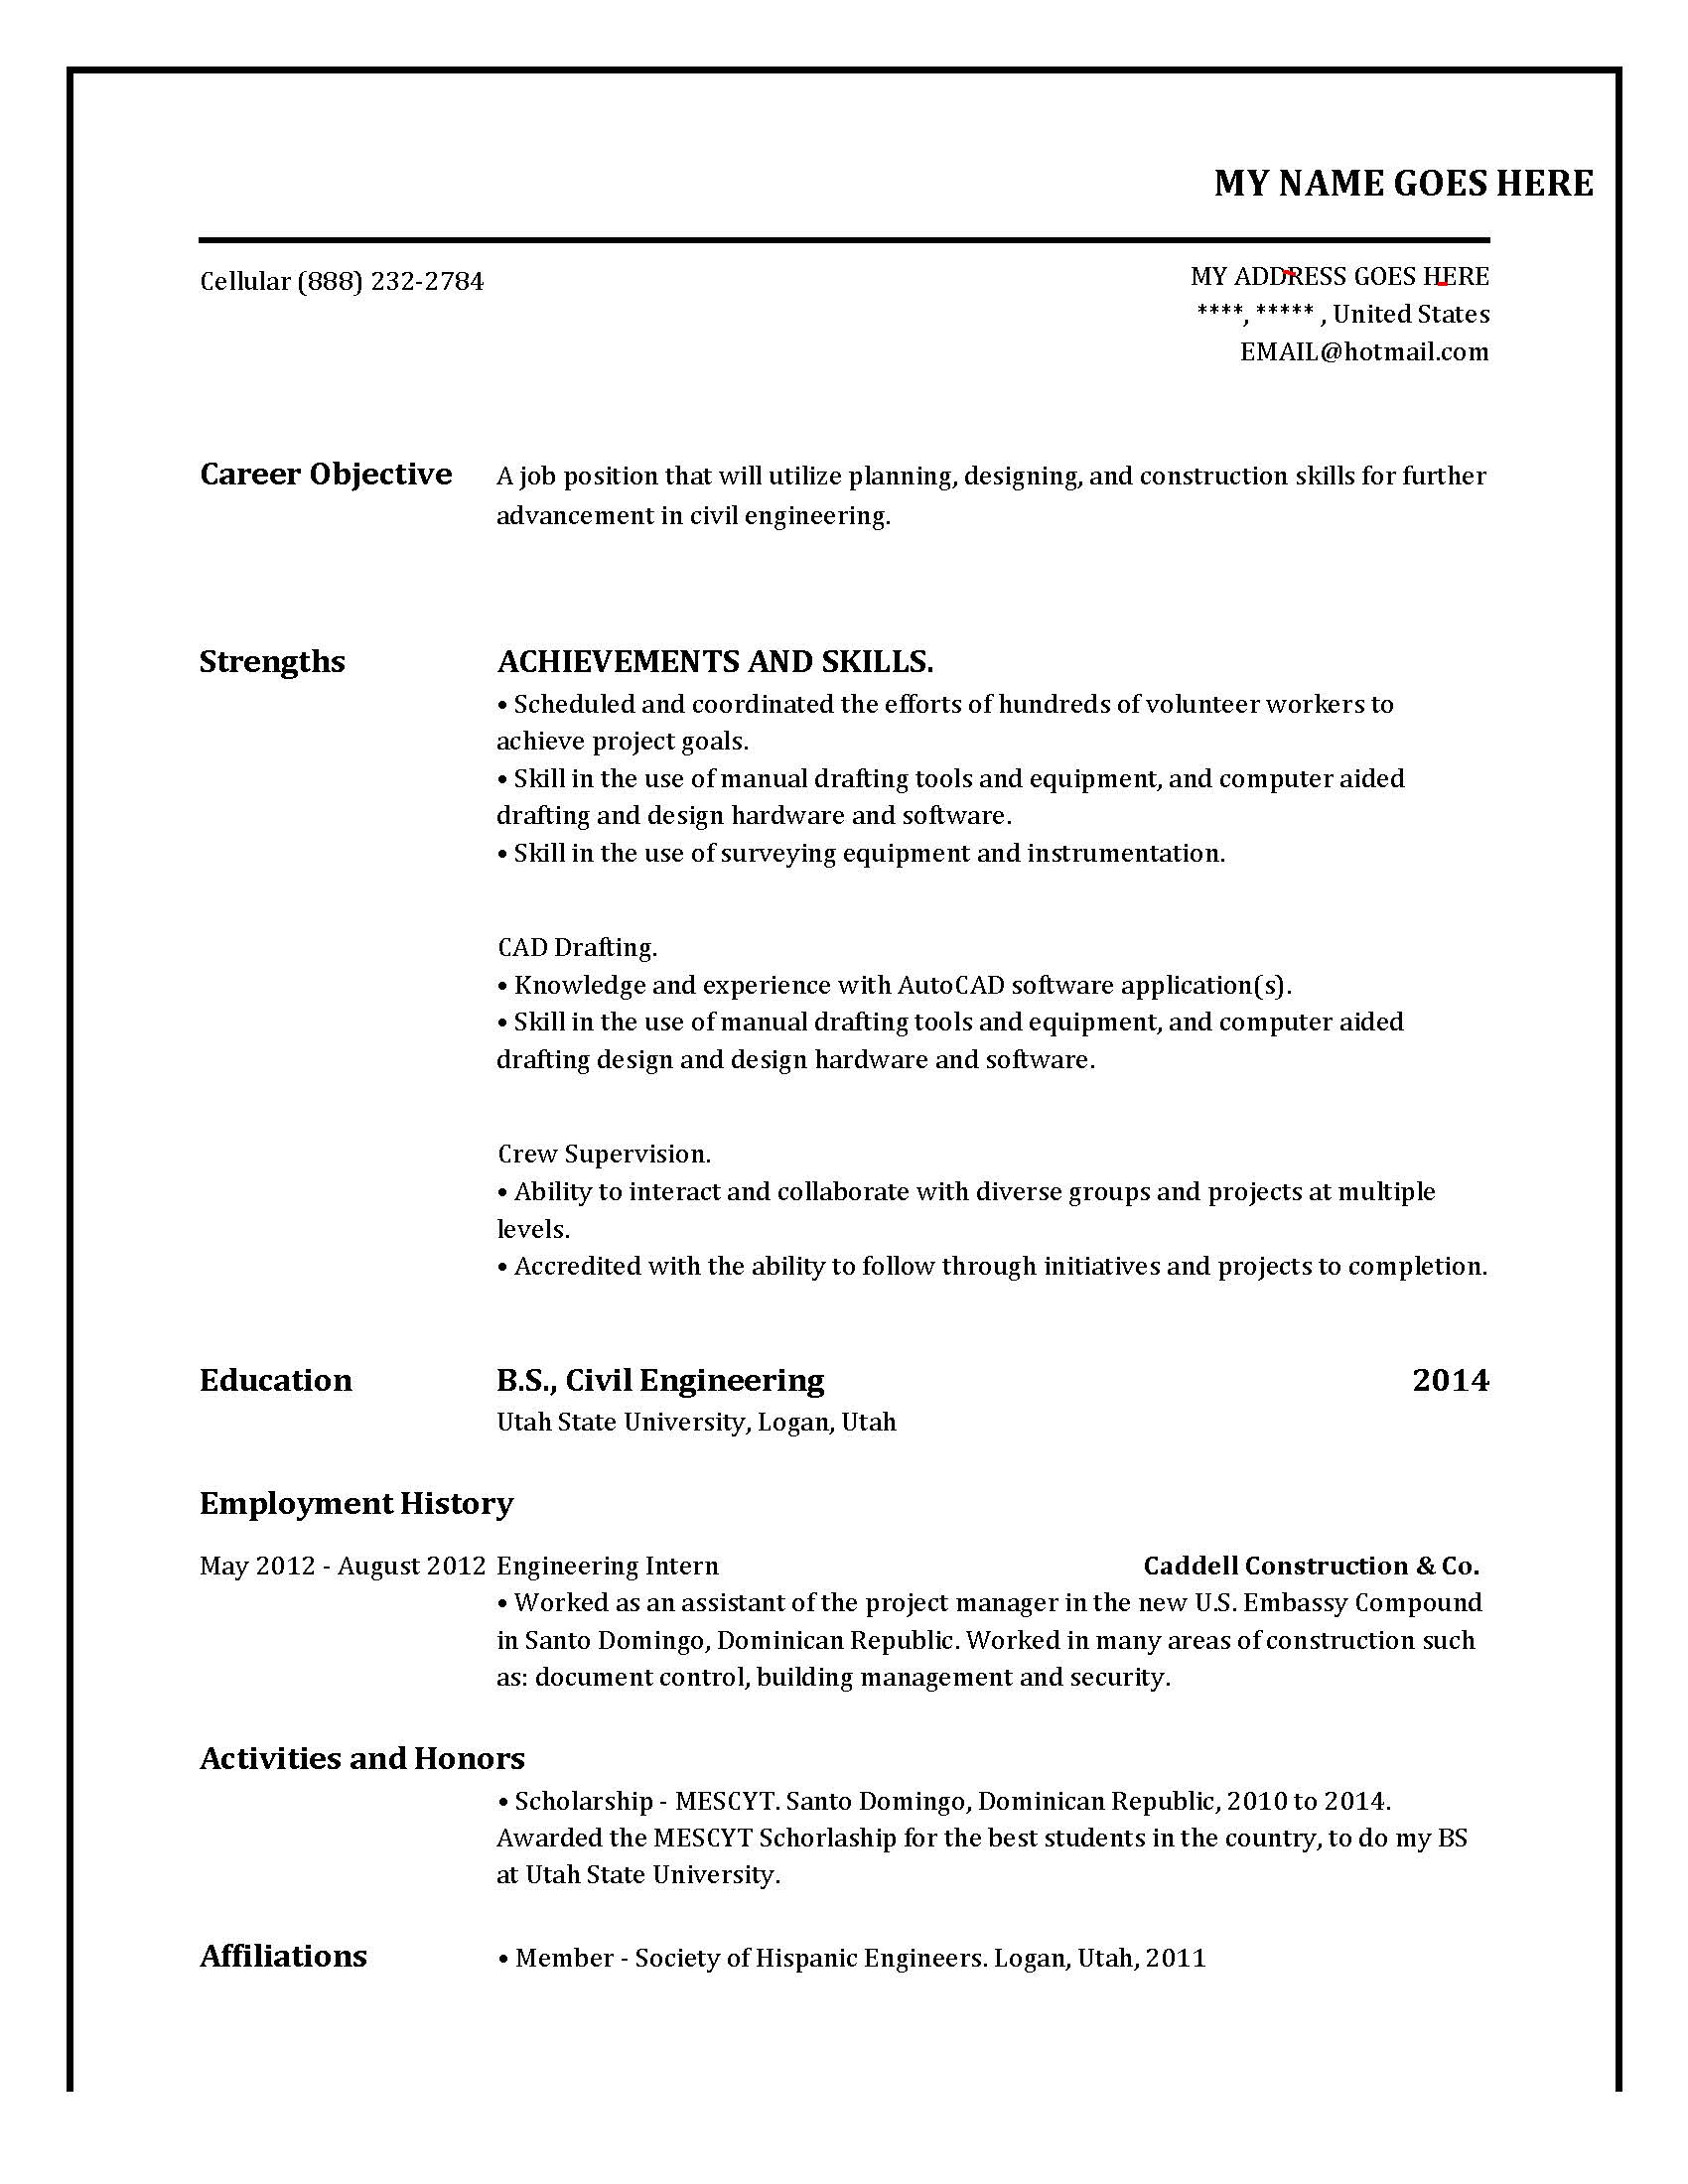 Resume Where Can I Post My Resume To Find A Job post my resume for job exclusive ideas 4 3 ways create how to make a high school